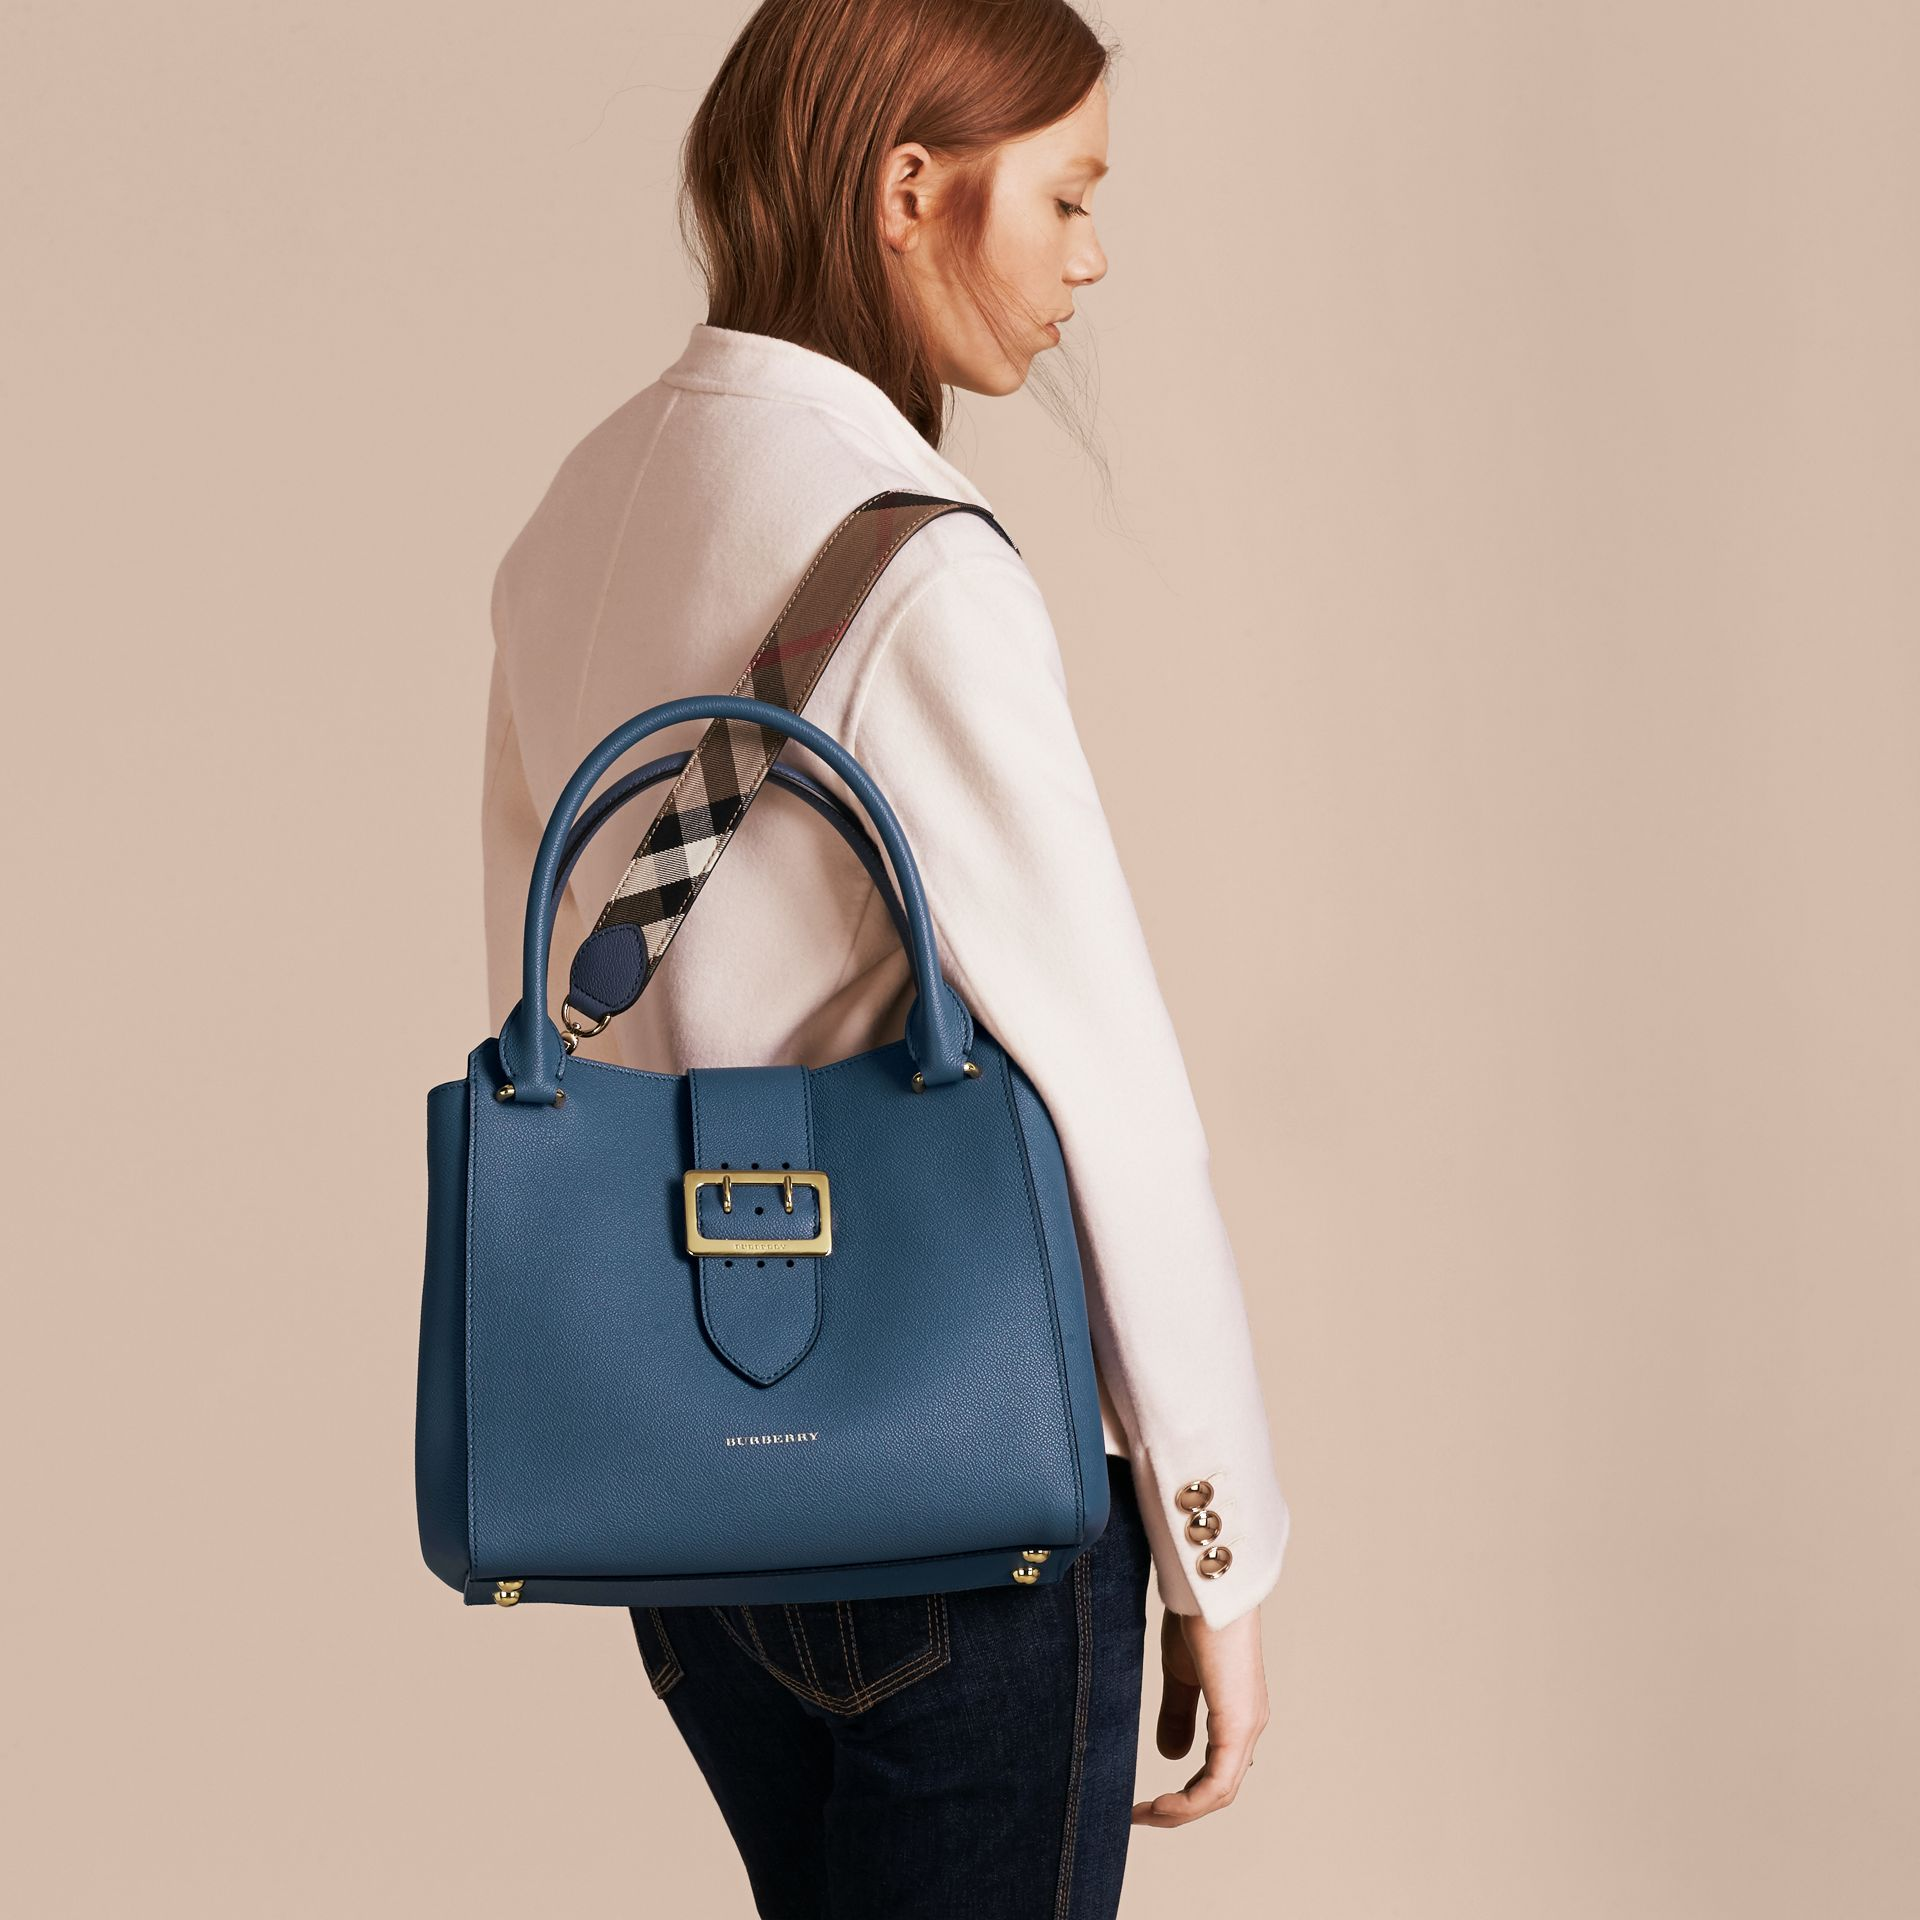 The Medium Buckle Tote in Grainy Leather in Steel Blue - Women | Burberry - gallery image 4